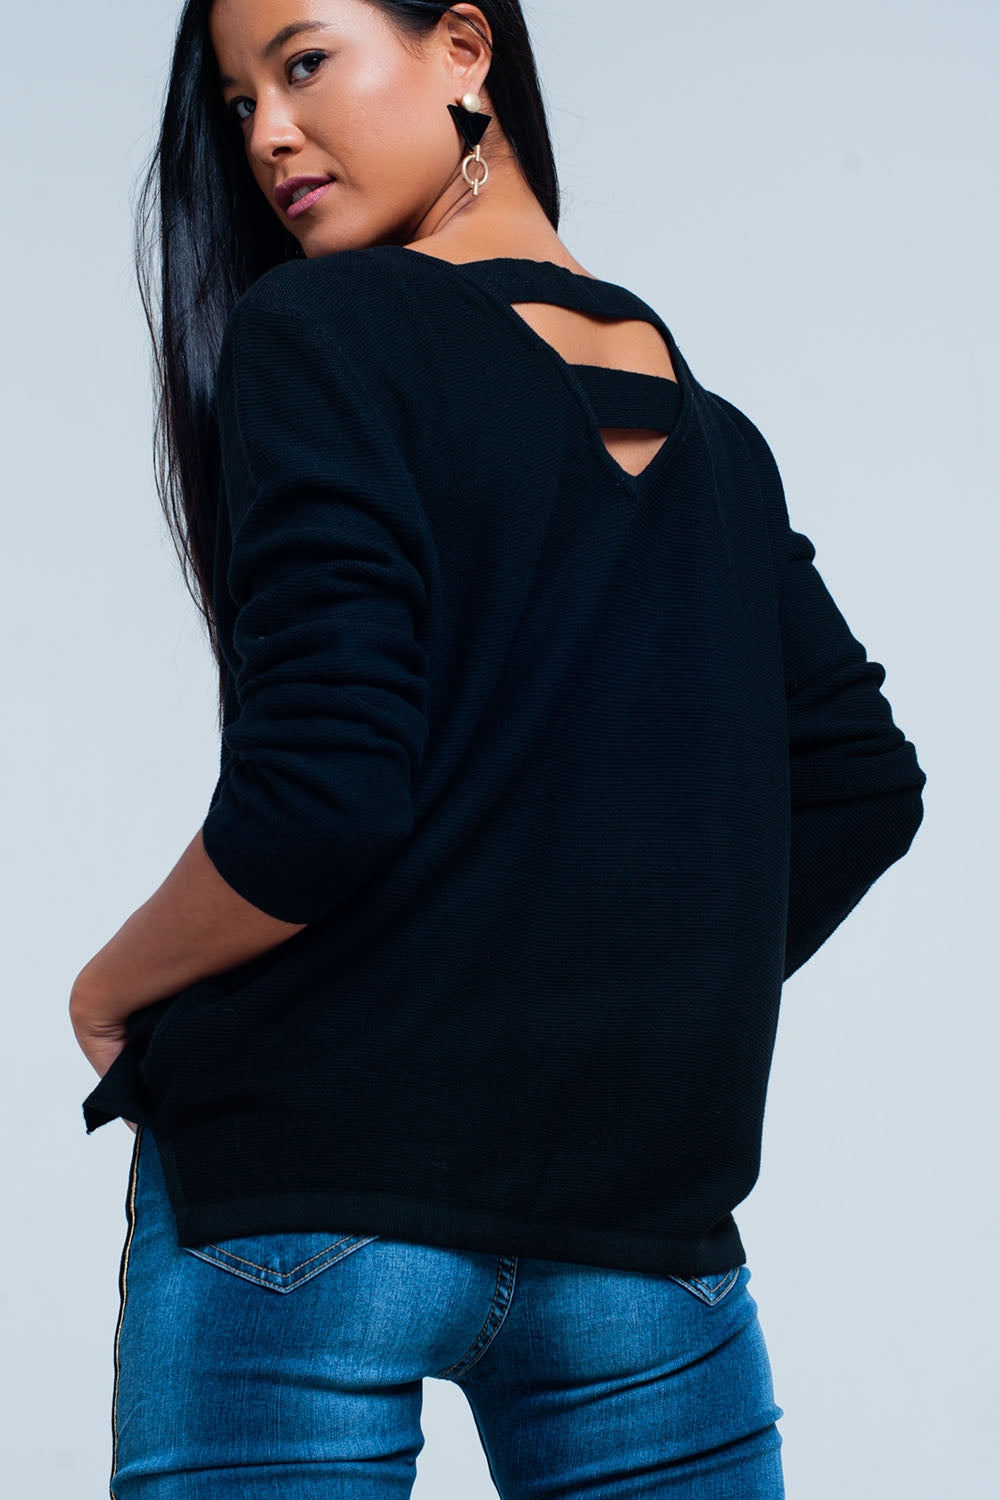 Black Sweater With Strappy Open Back-Women - Apparel - Sweaters - Pull Over-Product Details Super soft 'in between' sweater of very light fabric with wool for comfort. The straps in the back make the sweater more exciting and the sizing is regular fit.-Keyomi-Sook